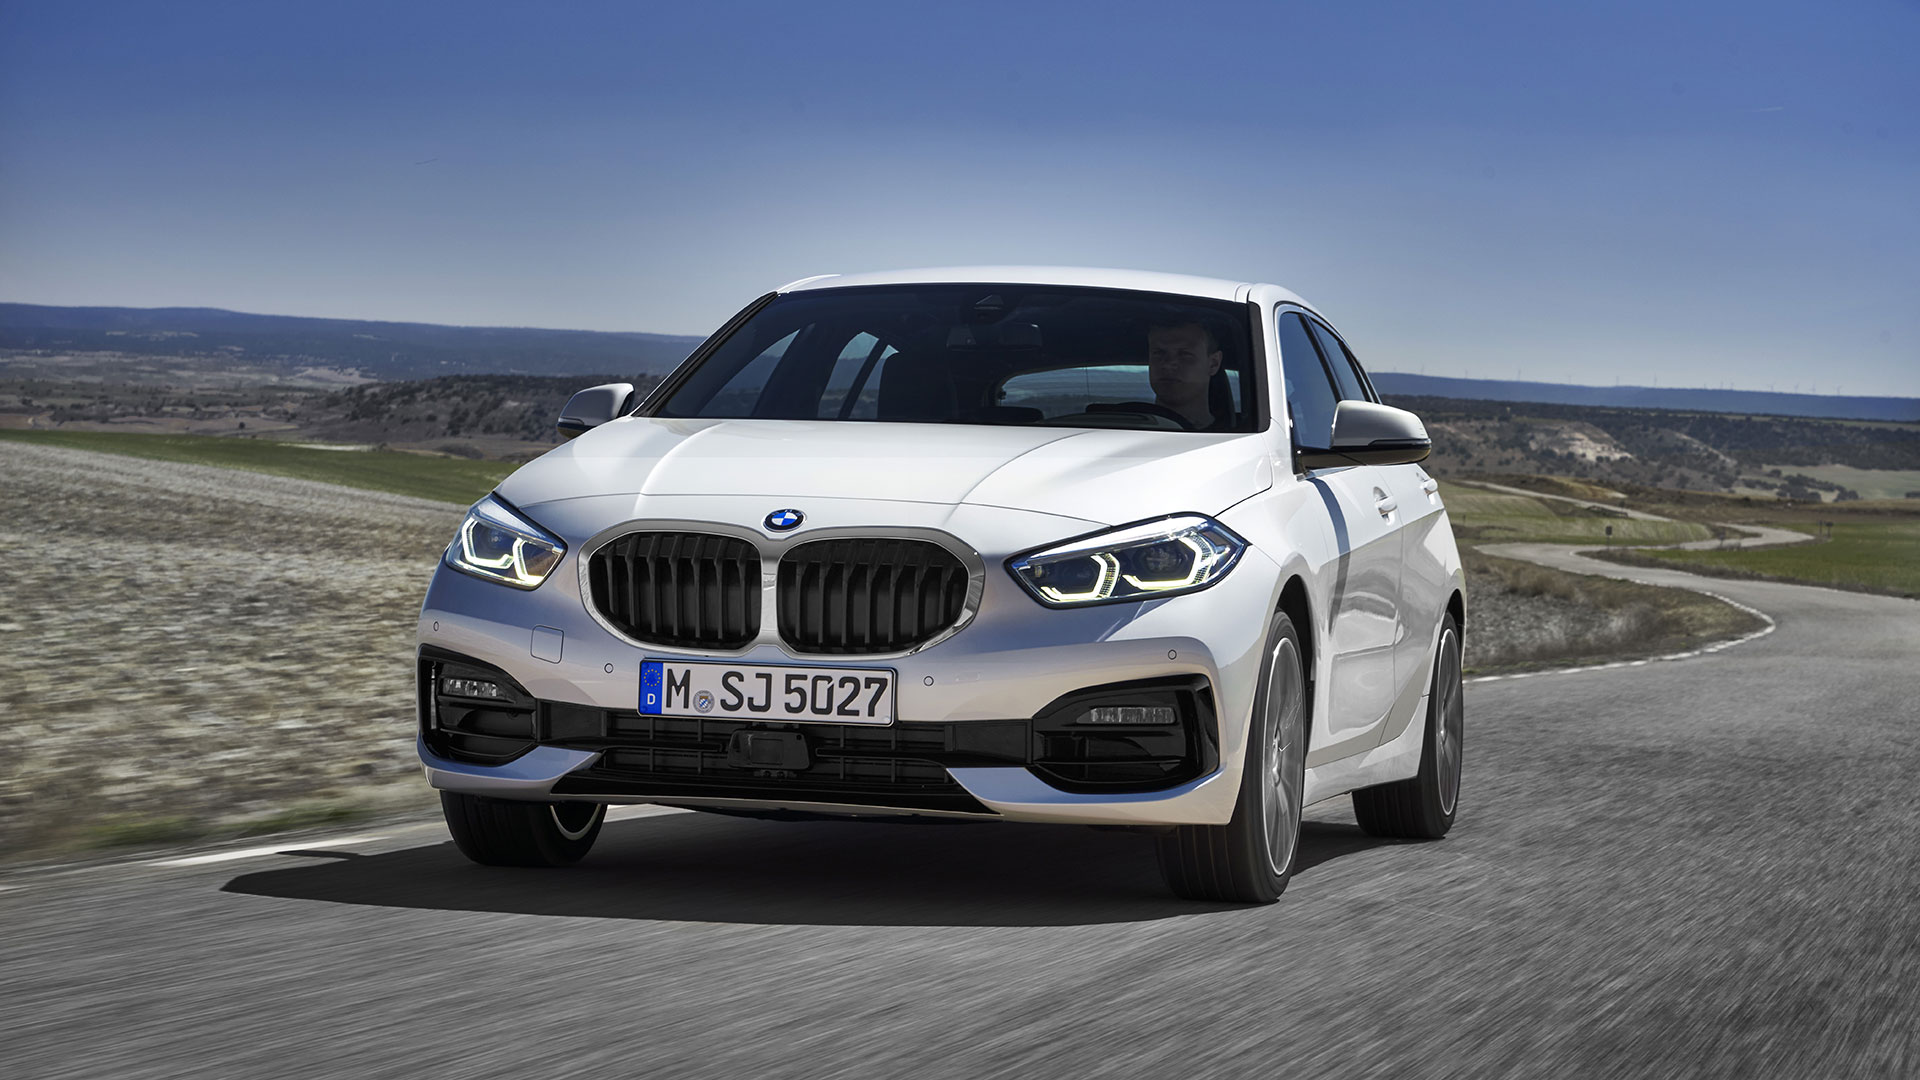 Bmw 1 Series M Sport Shadow Edition Used Cars For Sale On